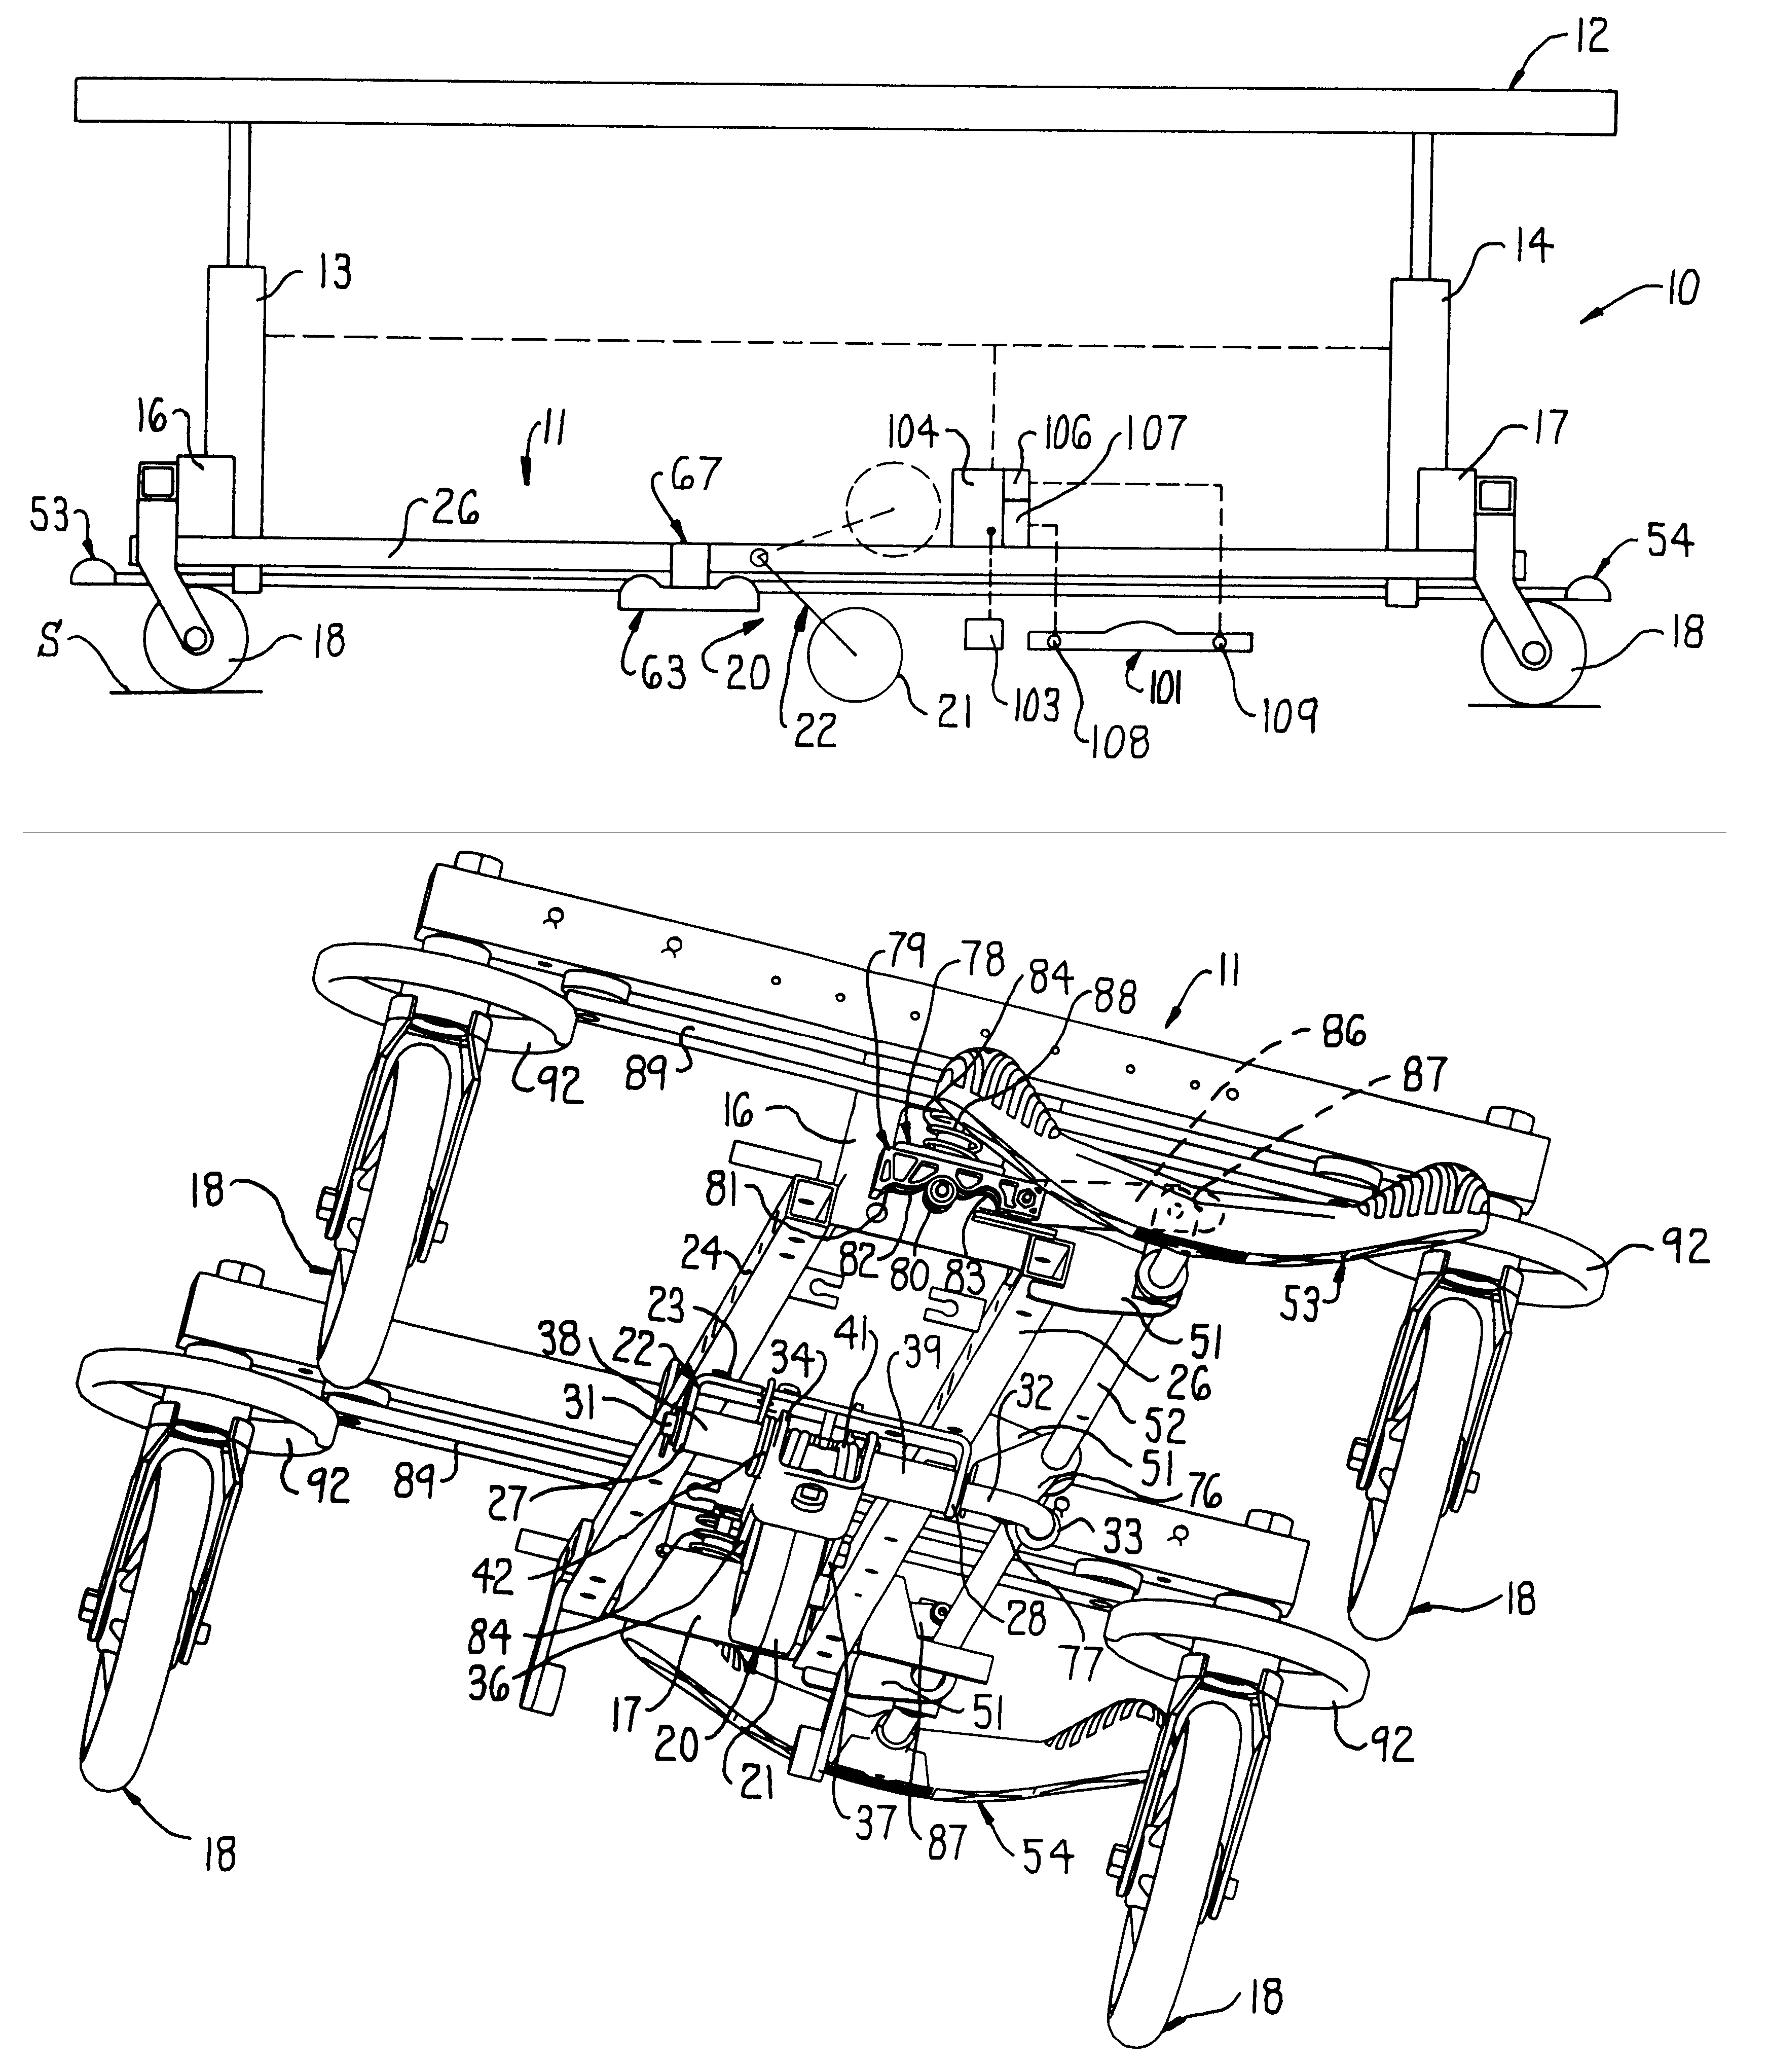 Stryker Stretcher Schematics Schematic Diagrams Evo Quibo 300 Wiring Diagram Patent Us6240579 Unitary Pedal Control Of Brake And Fifth Wheel